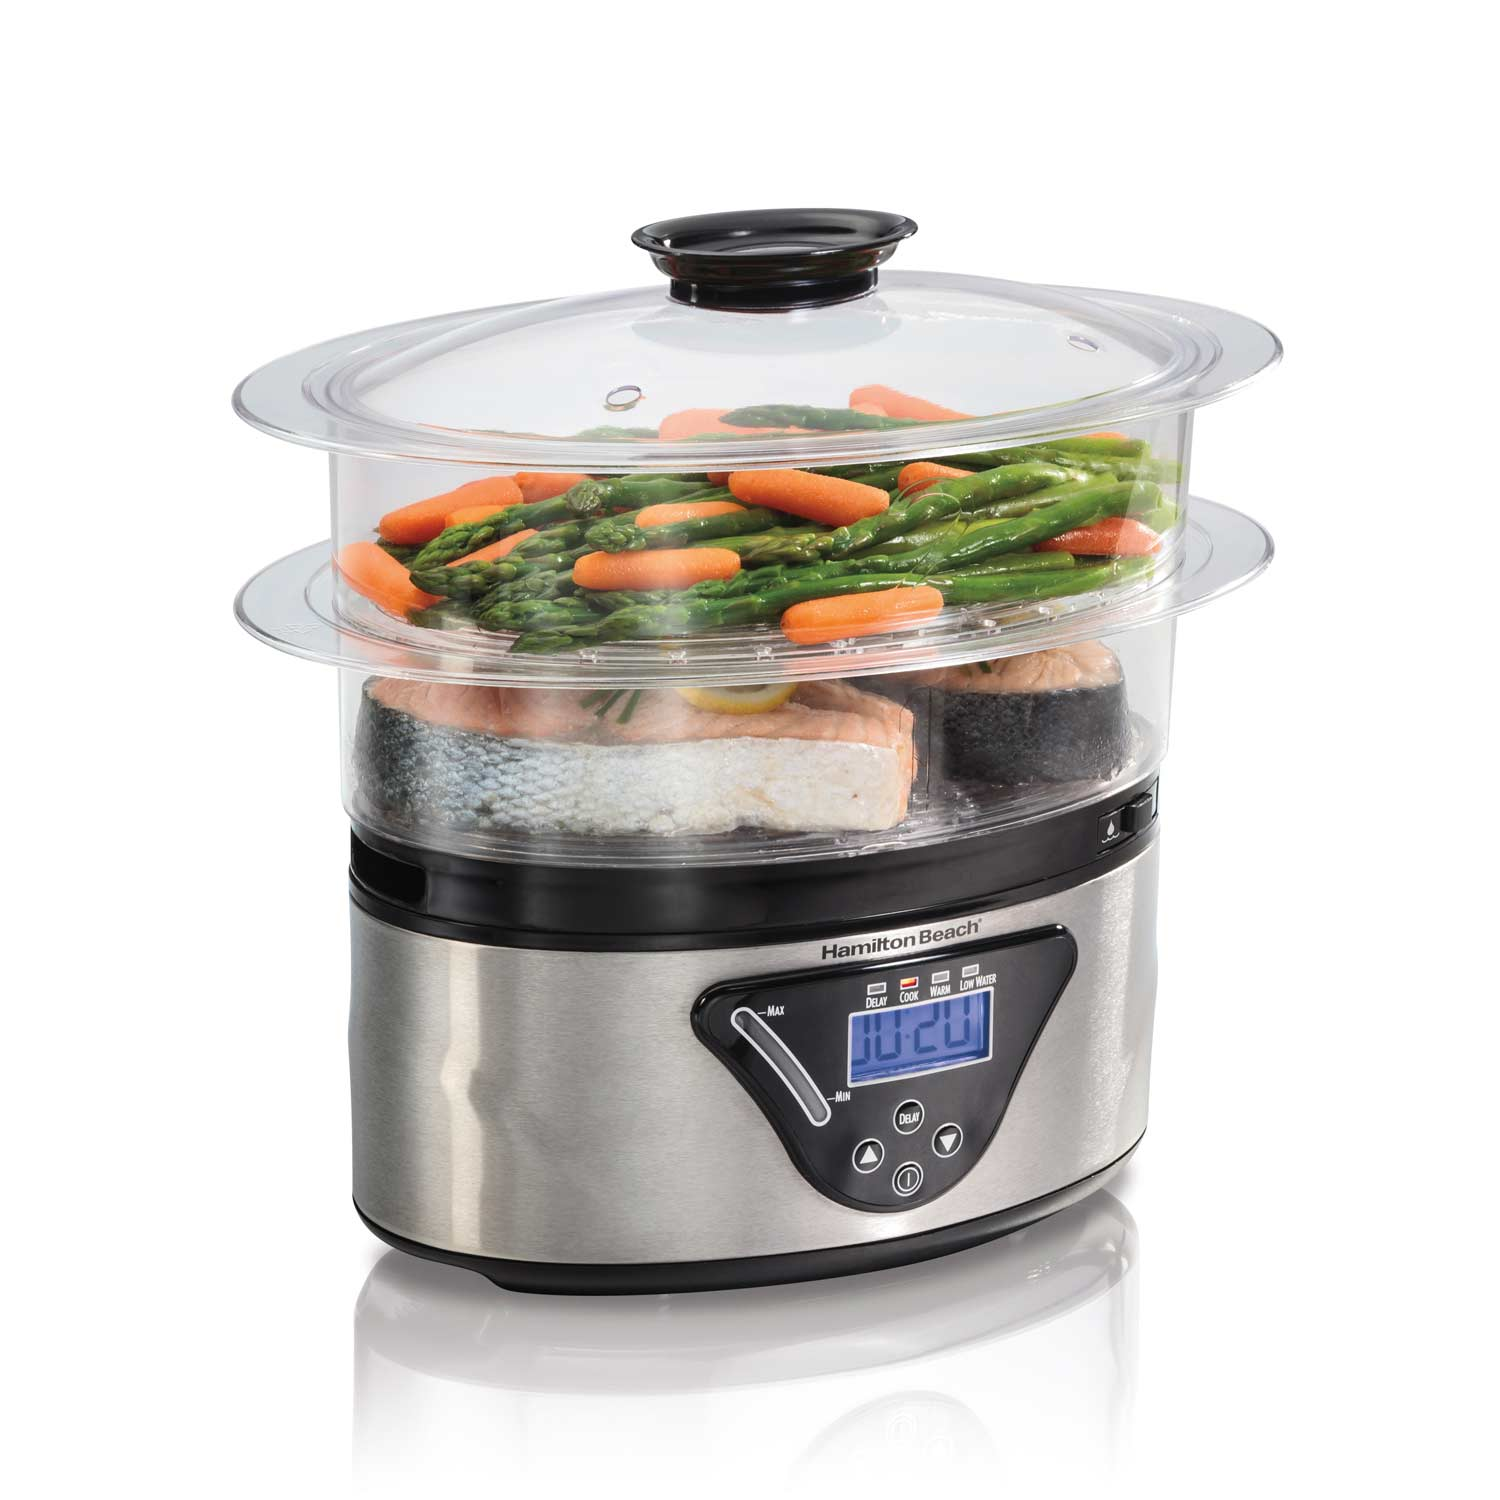 5.5 Quart Digital Steamer (37530A)